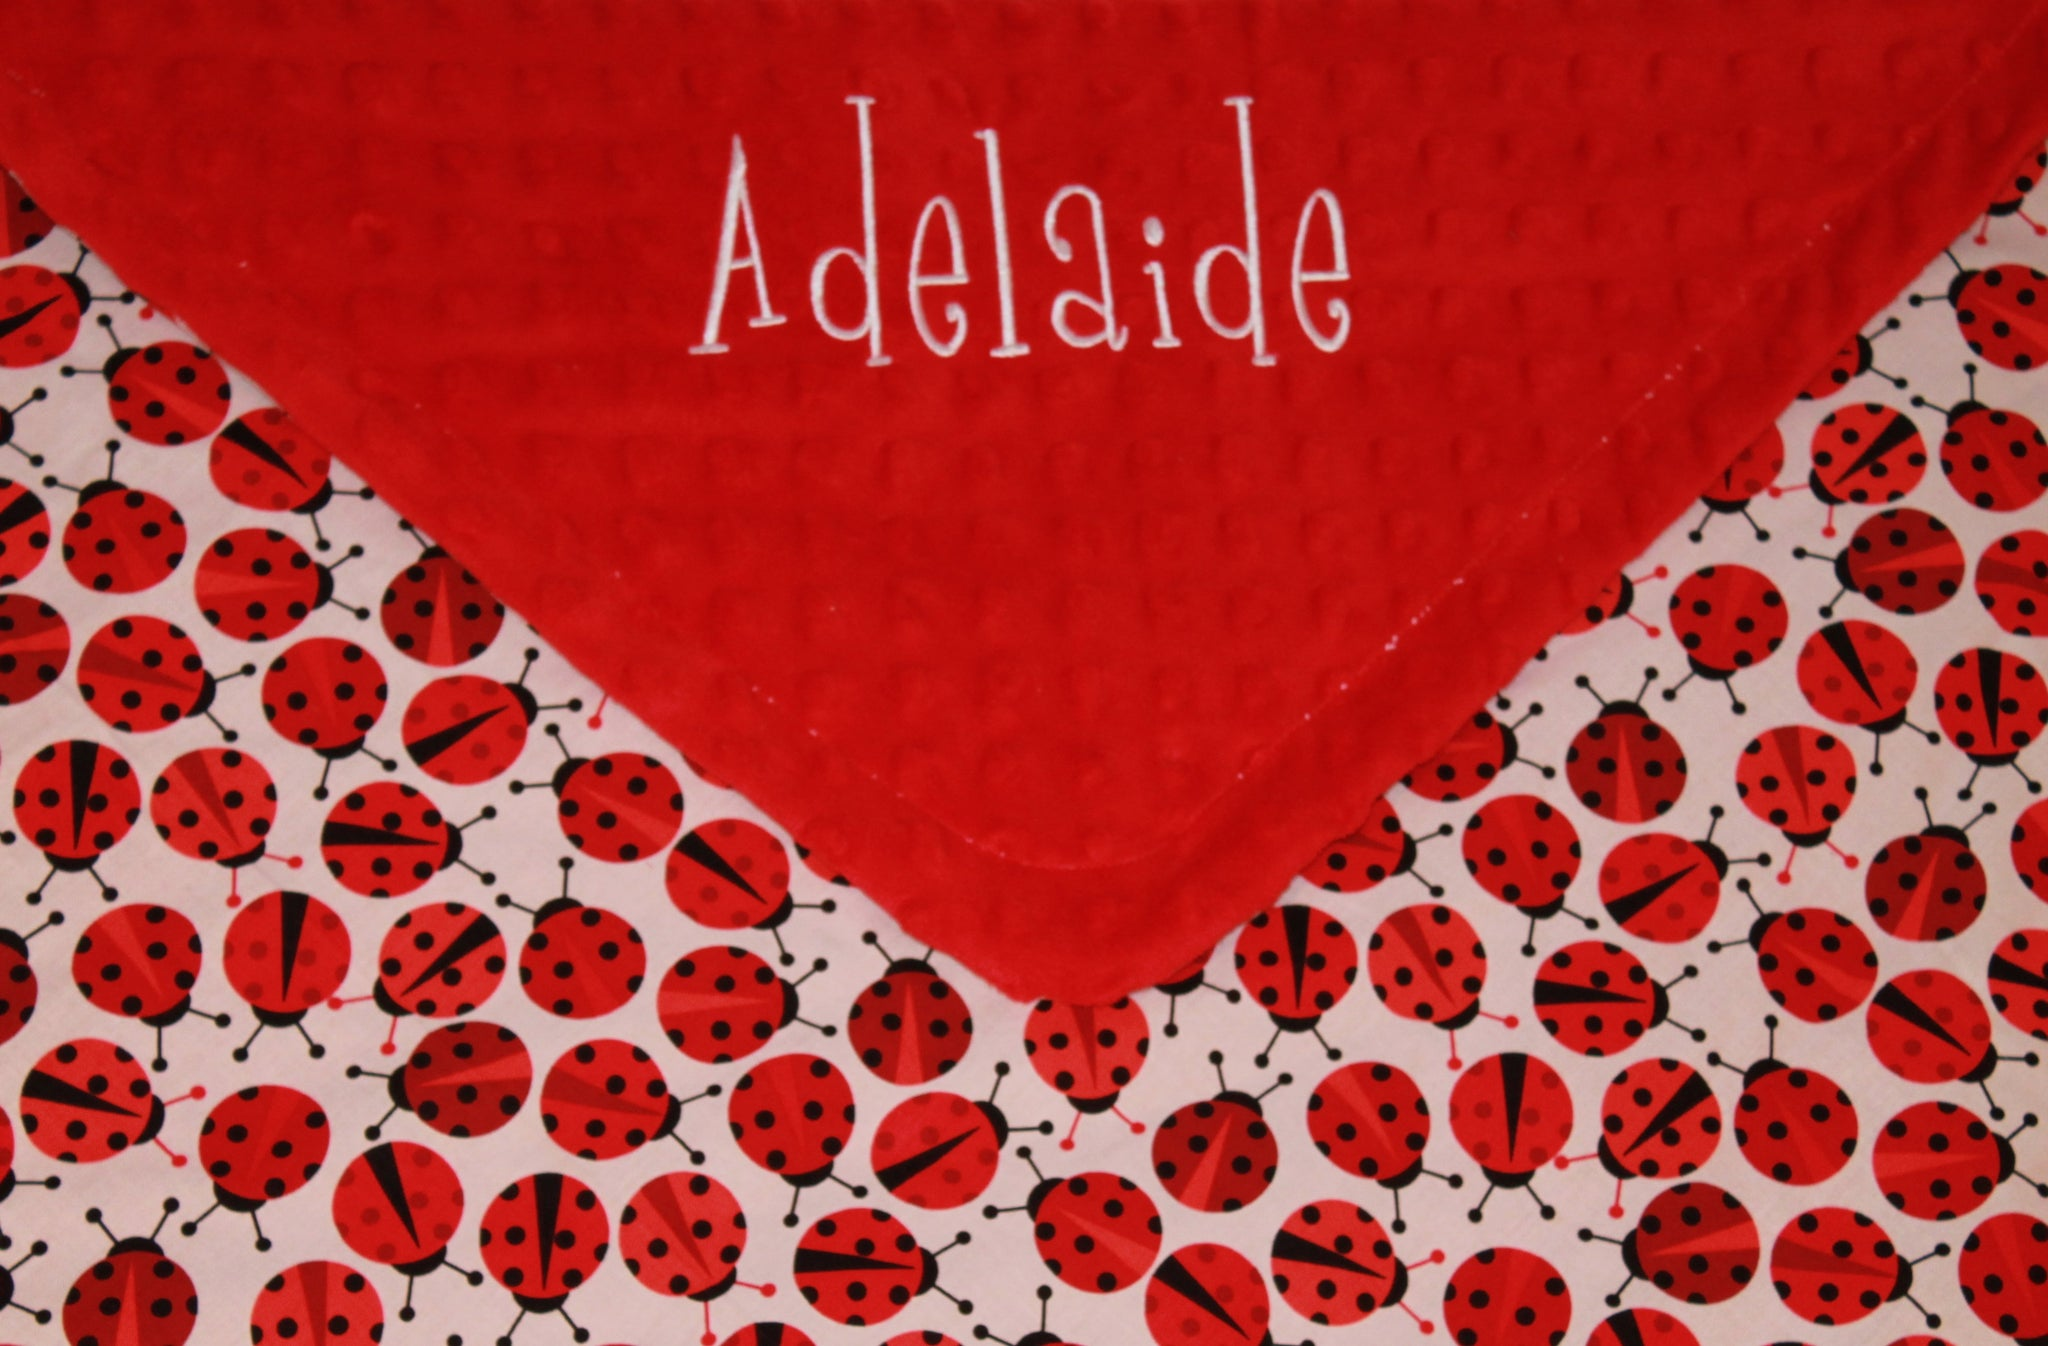 Red Ladybug on Red Minky, Baby Blanket